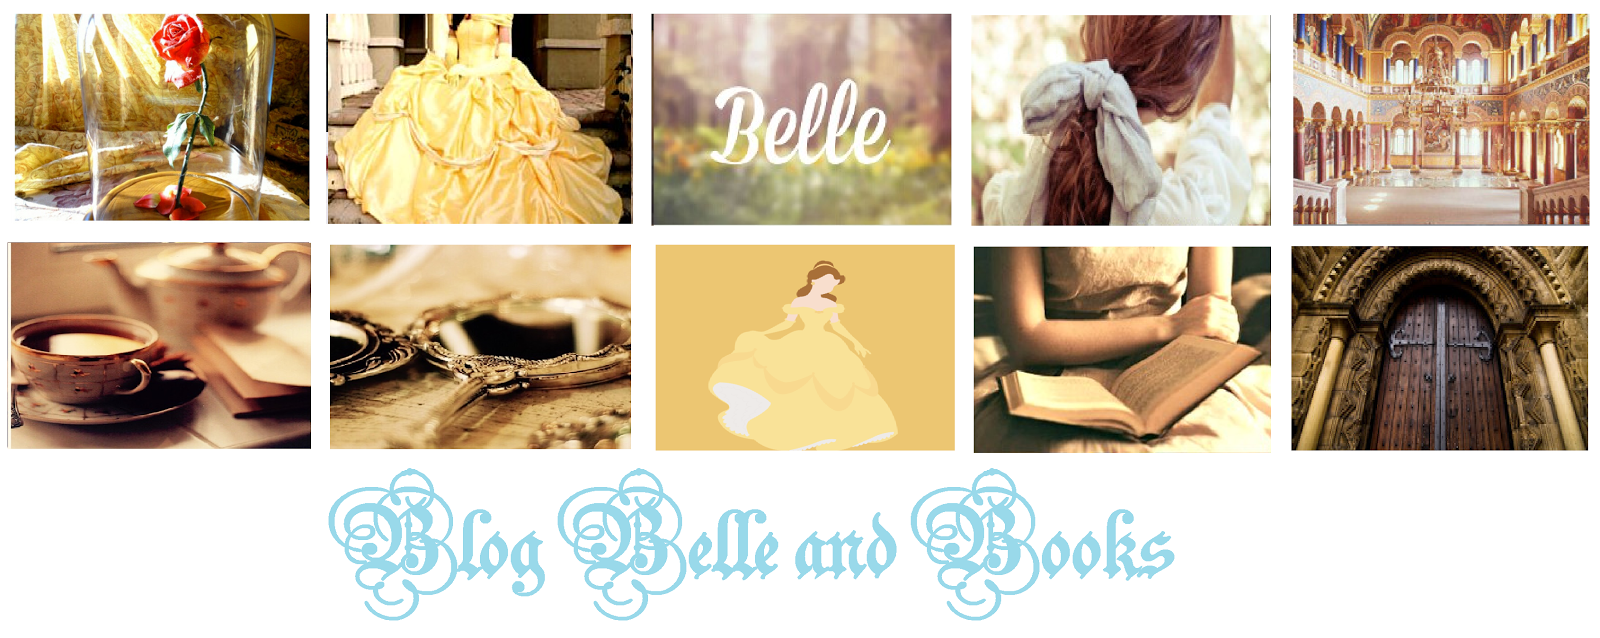 Belle and Books